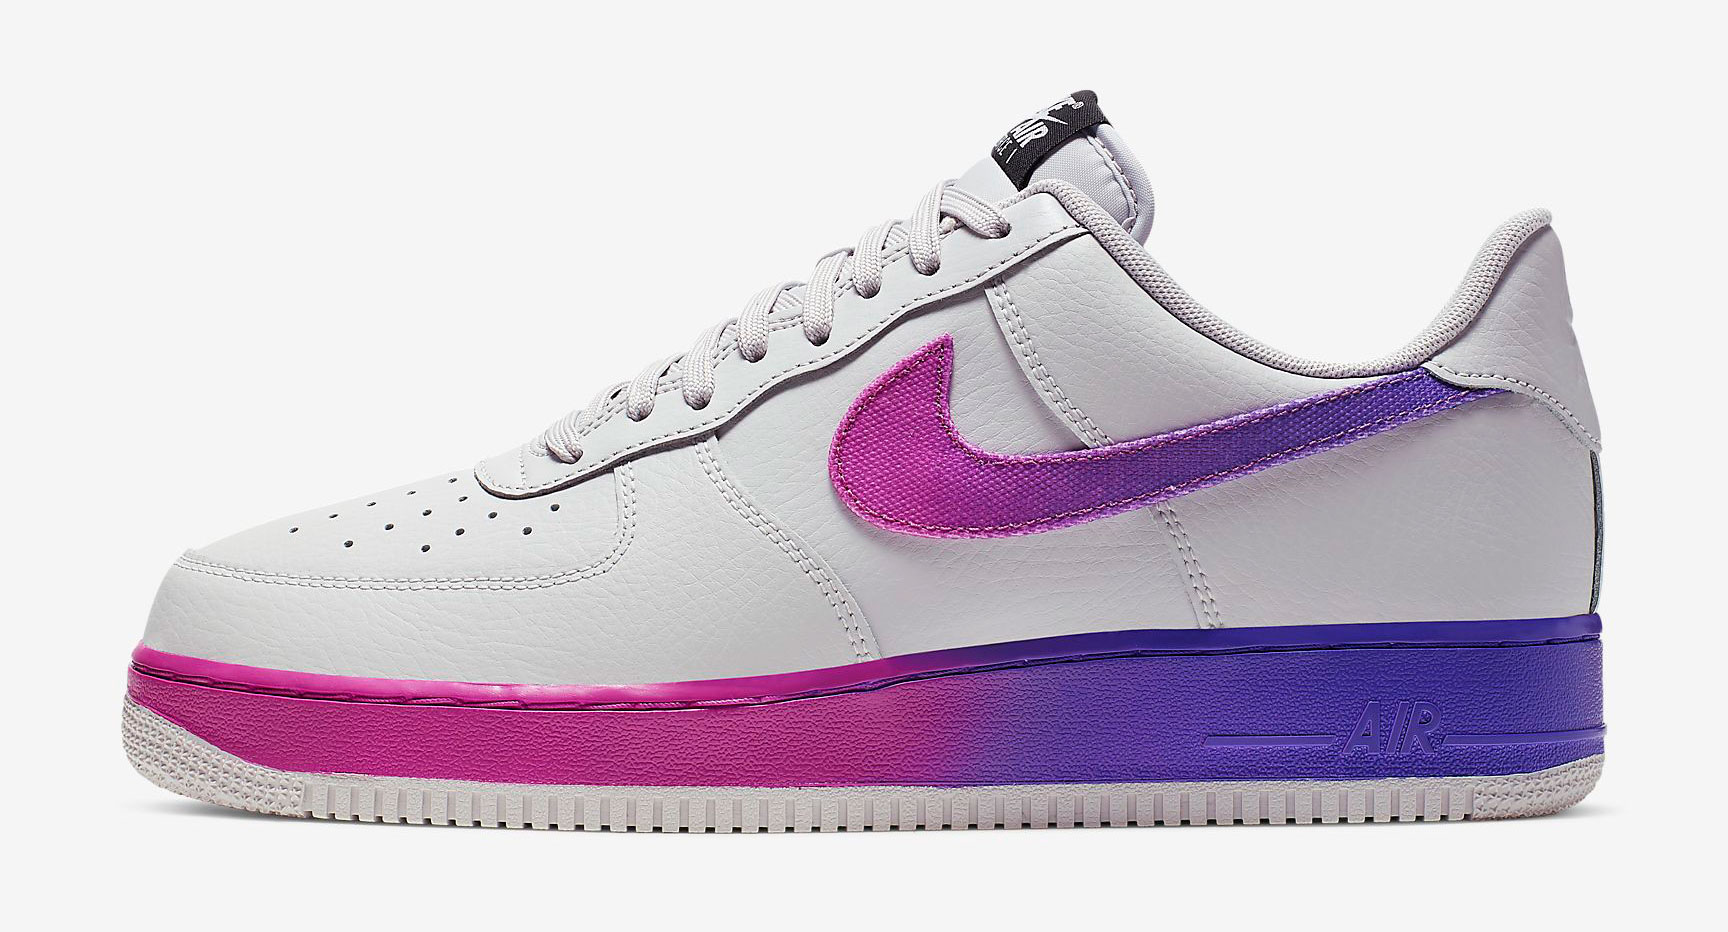 nike-air-force-1-low-gradient-vast-grey-fuchsia-grape-release-date-where-to-buy